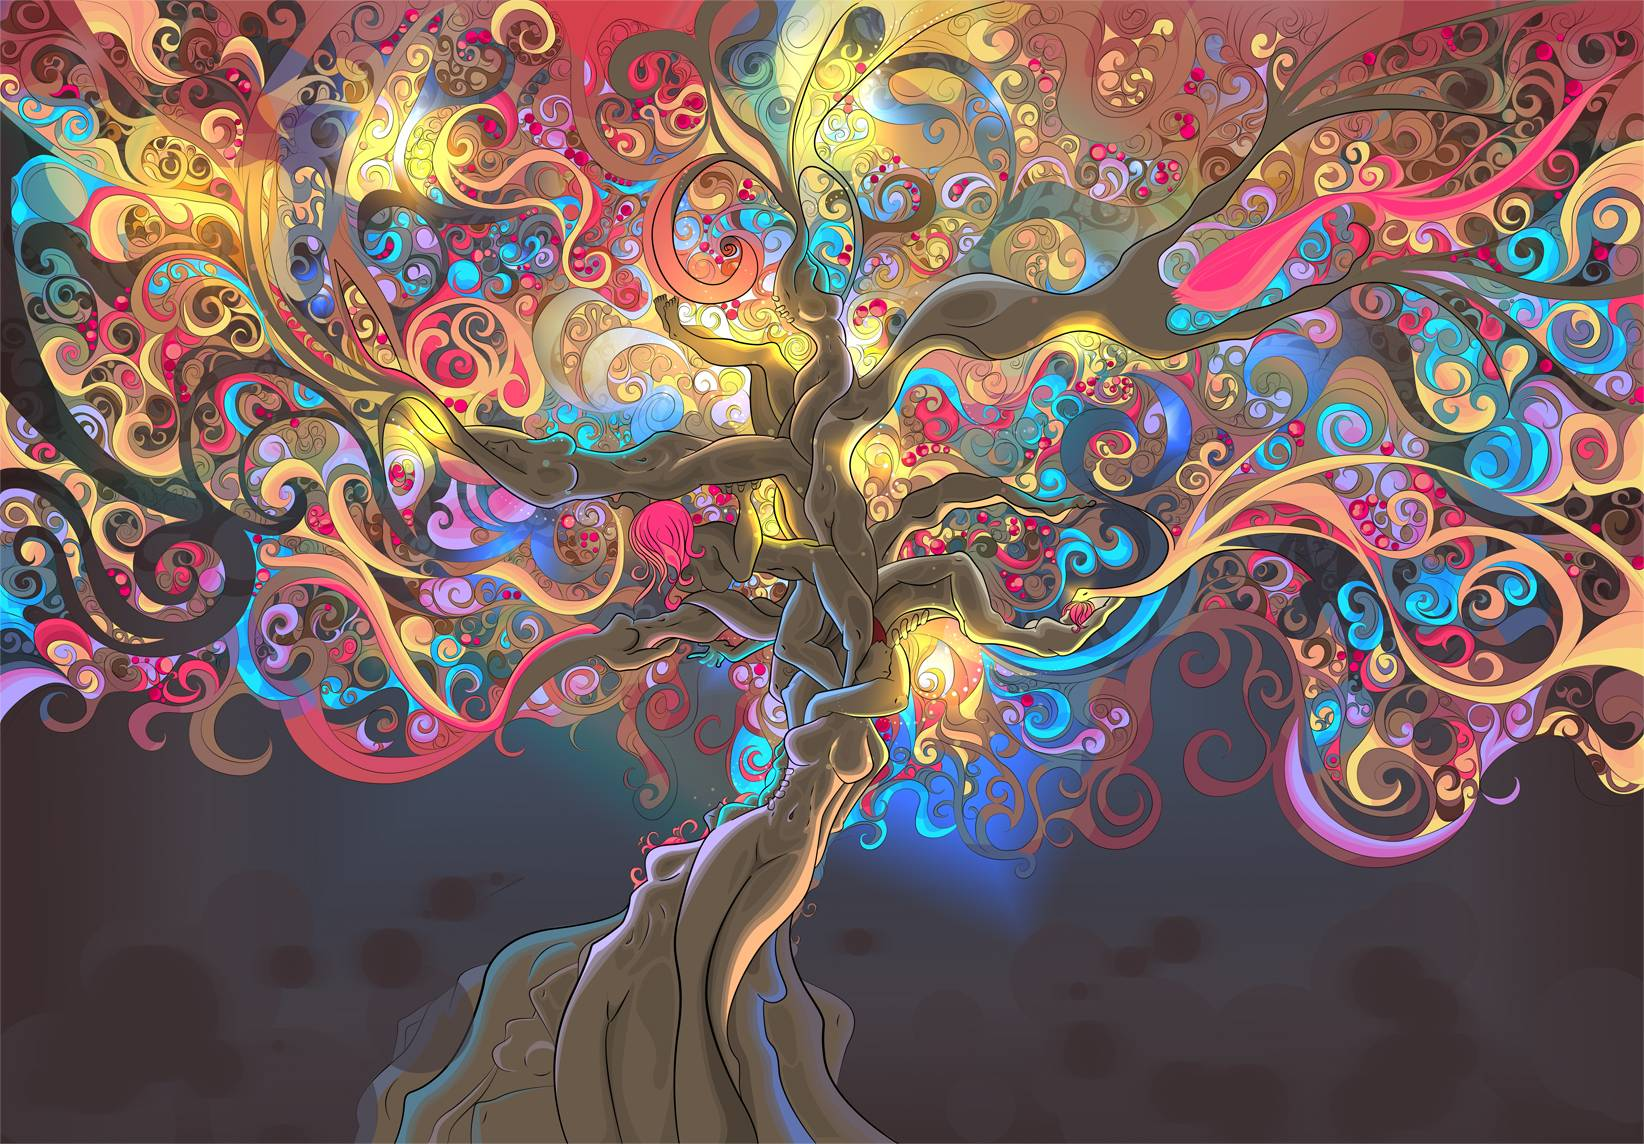 Psychedelic Art Wallpapers Top Free Psychedelic Art Backgrounds Wallpaperaccess